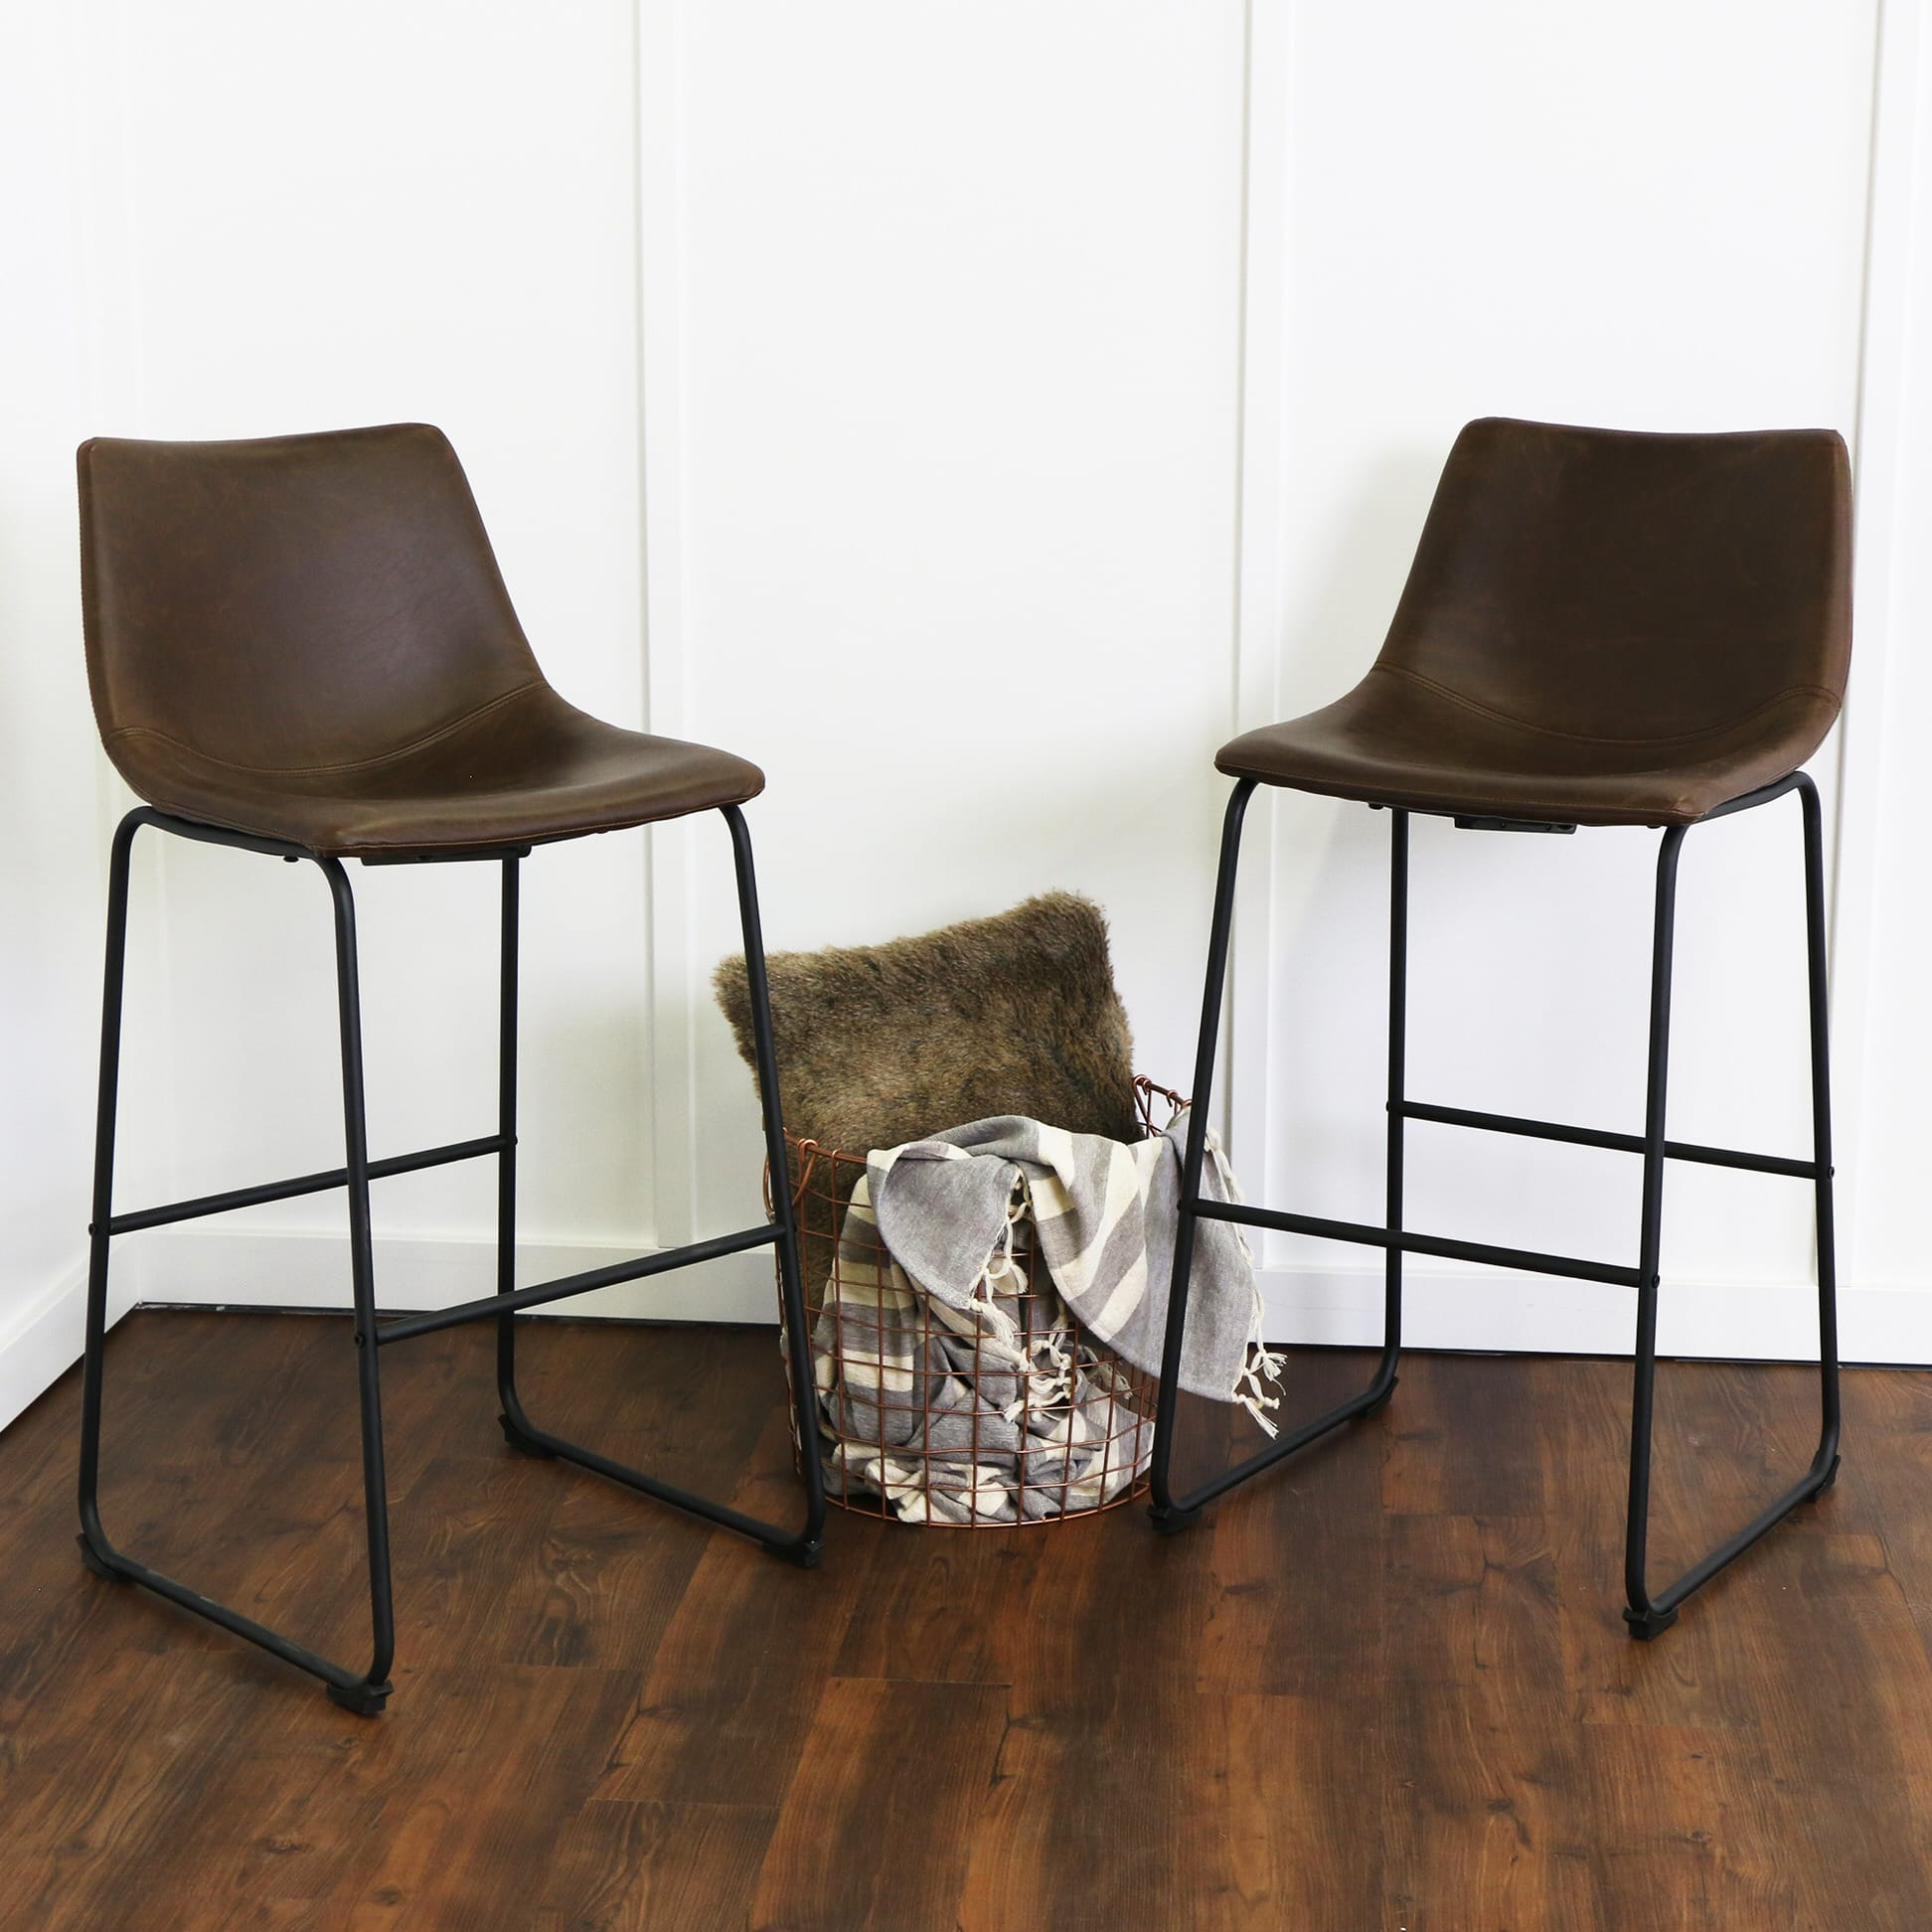 Wasatch Faux Leather Bar Stools Set Of 2 Brown By